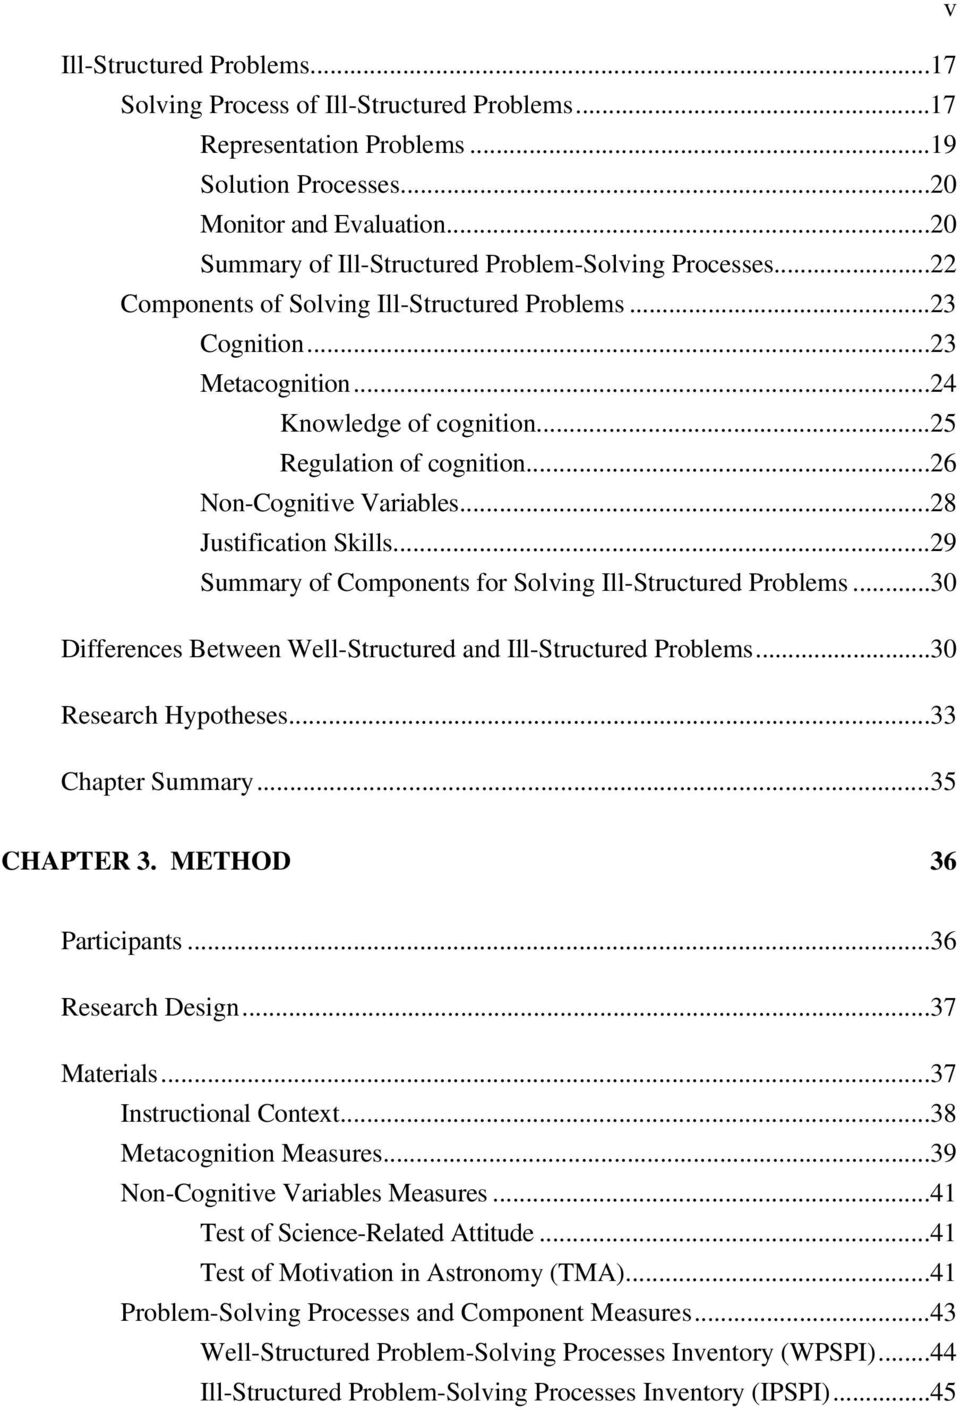 ..26 Non-Cognitive Variables...28 Justification Skills...29 Summary of Components for Solving Ill-Structured Problems...30 Differences Between Well-Structured and Ill-Structured Problems.